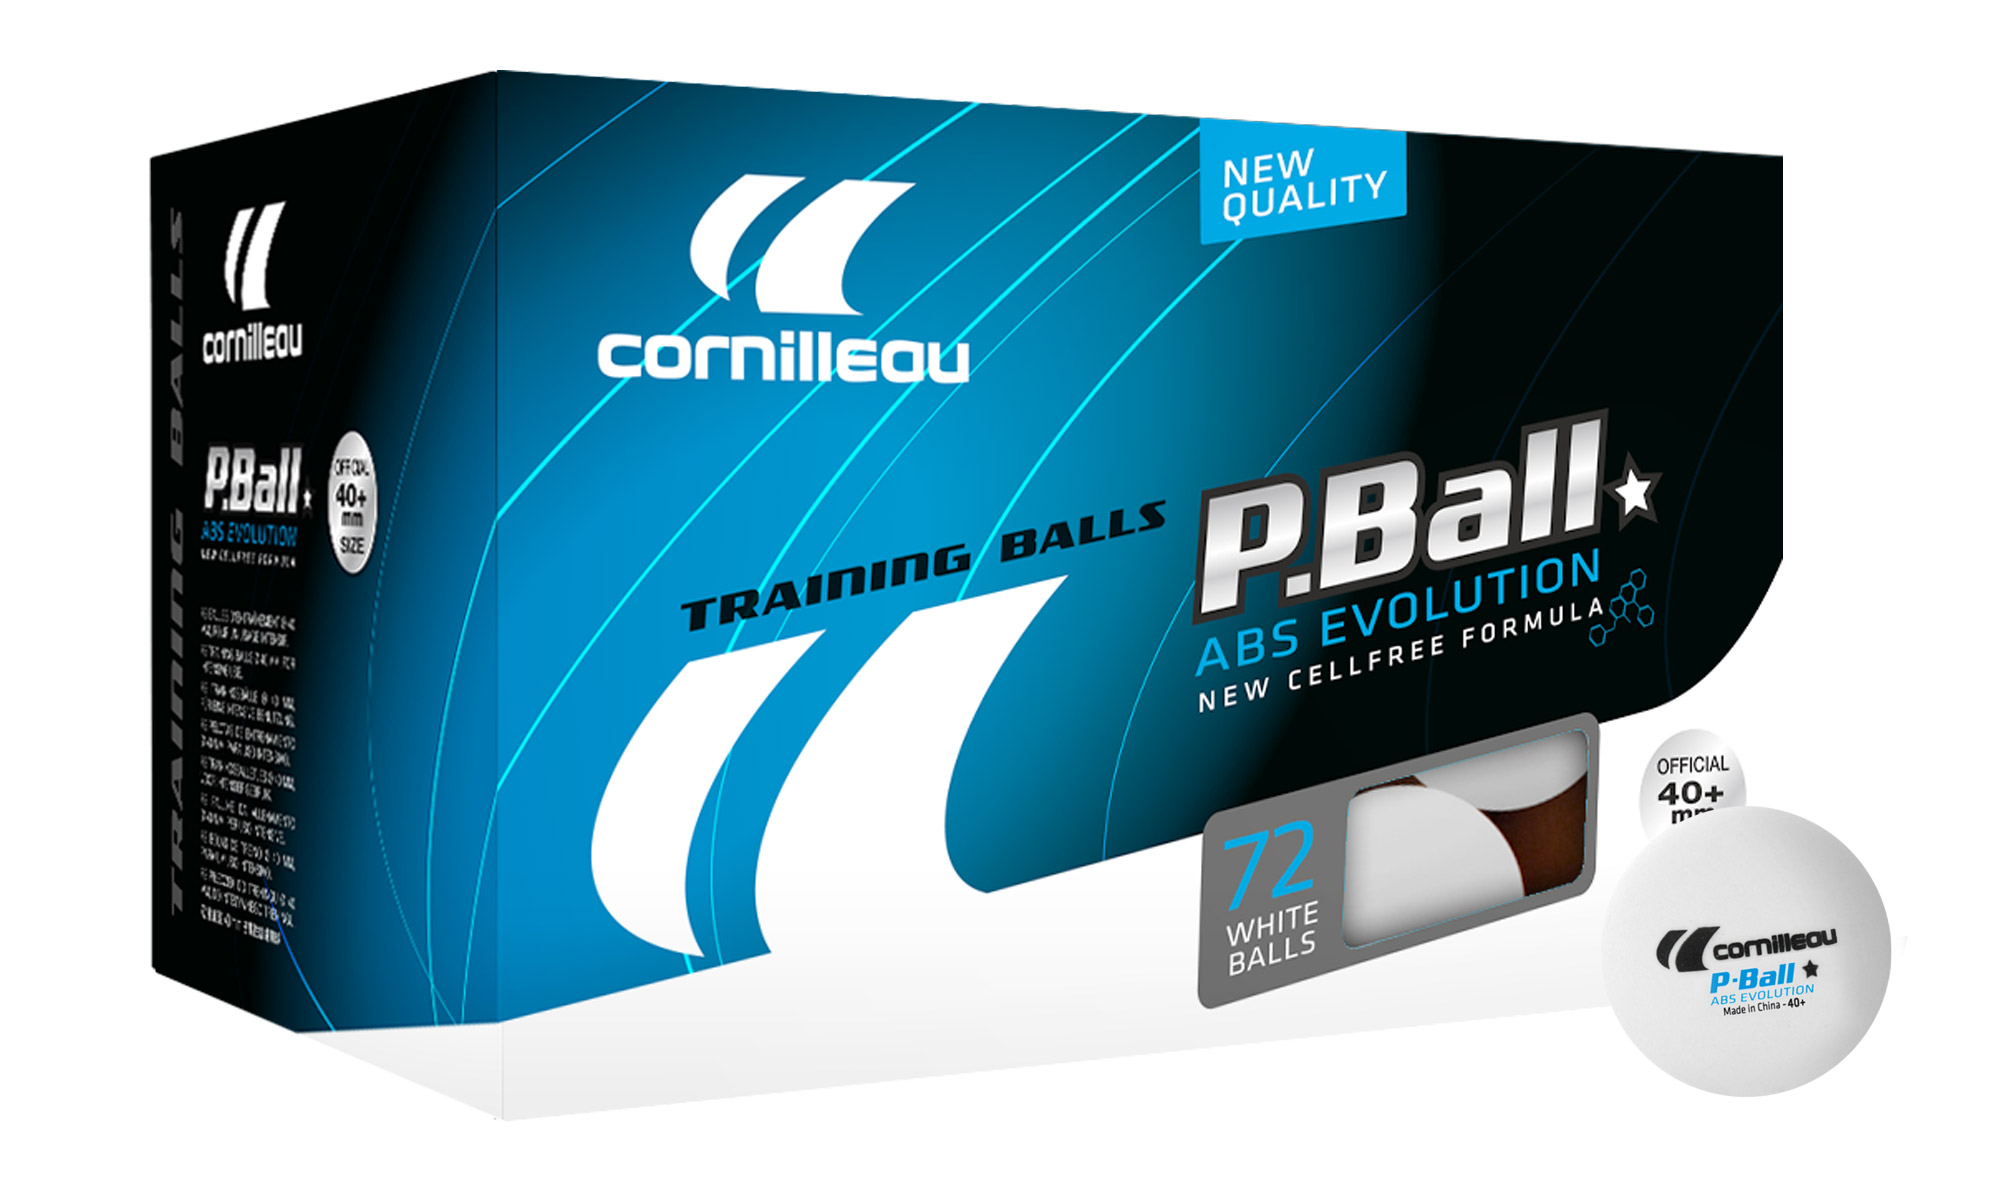 Cornilleau P-Balls ABS Evolution 1 Star Balls - Box of 72